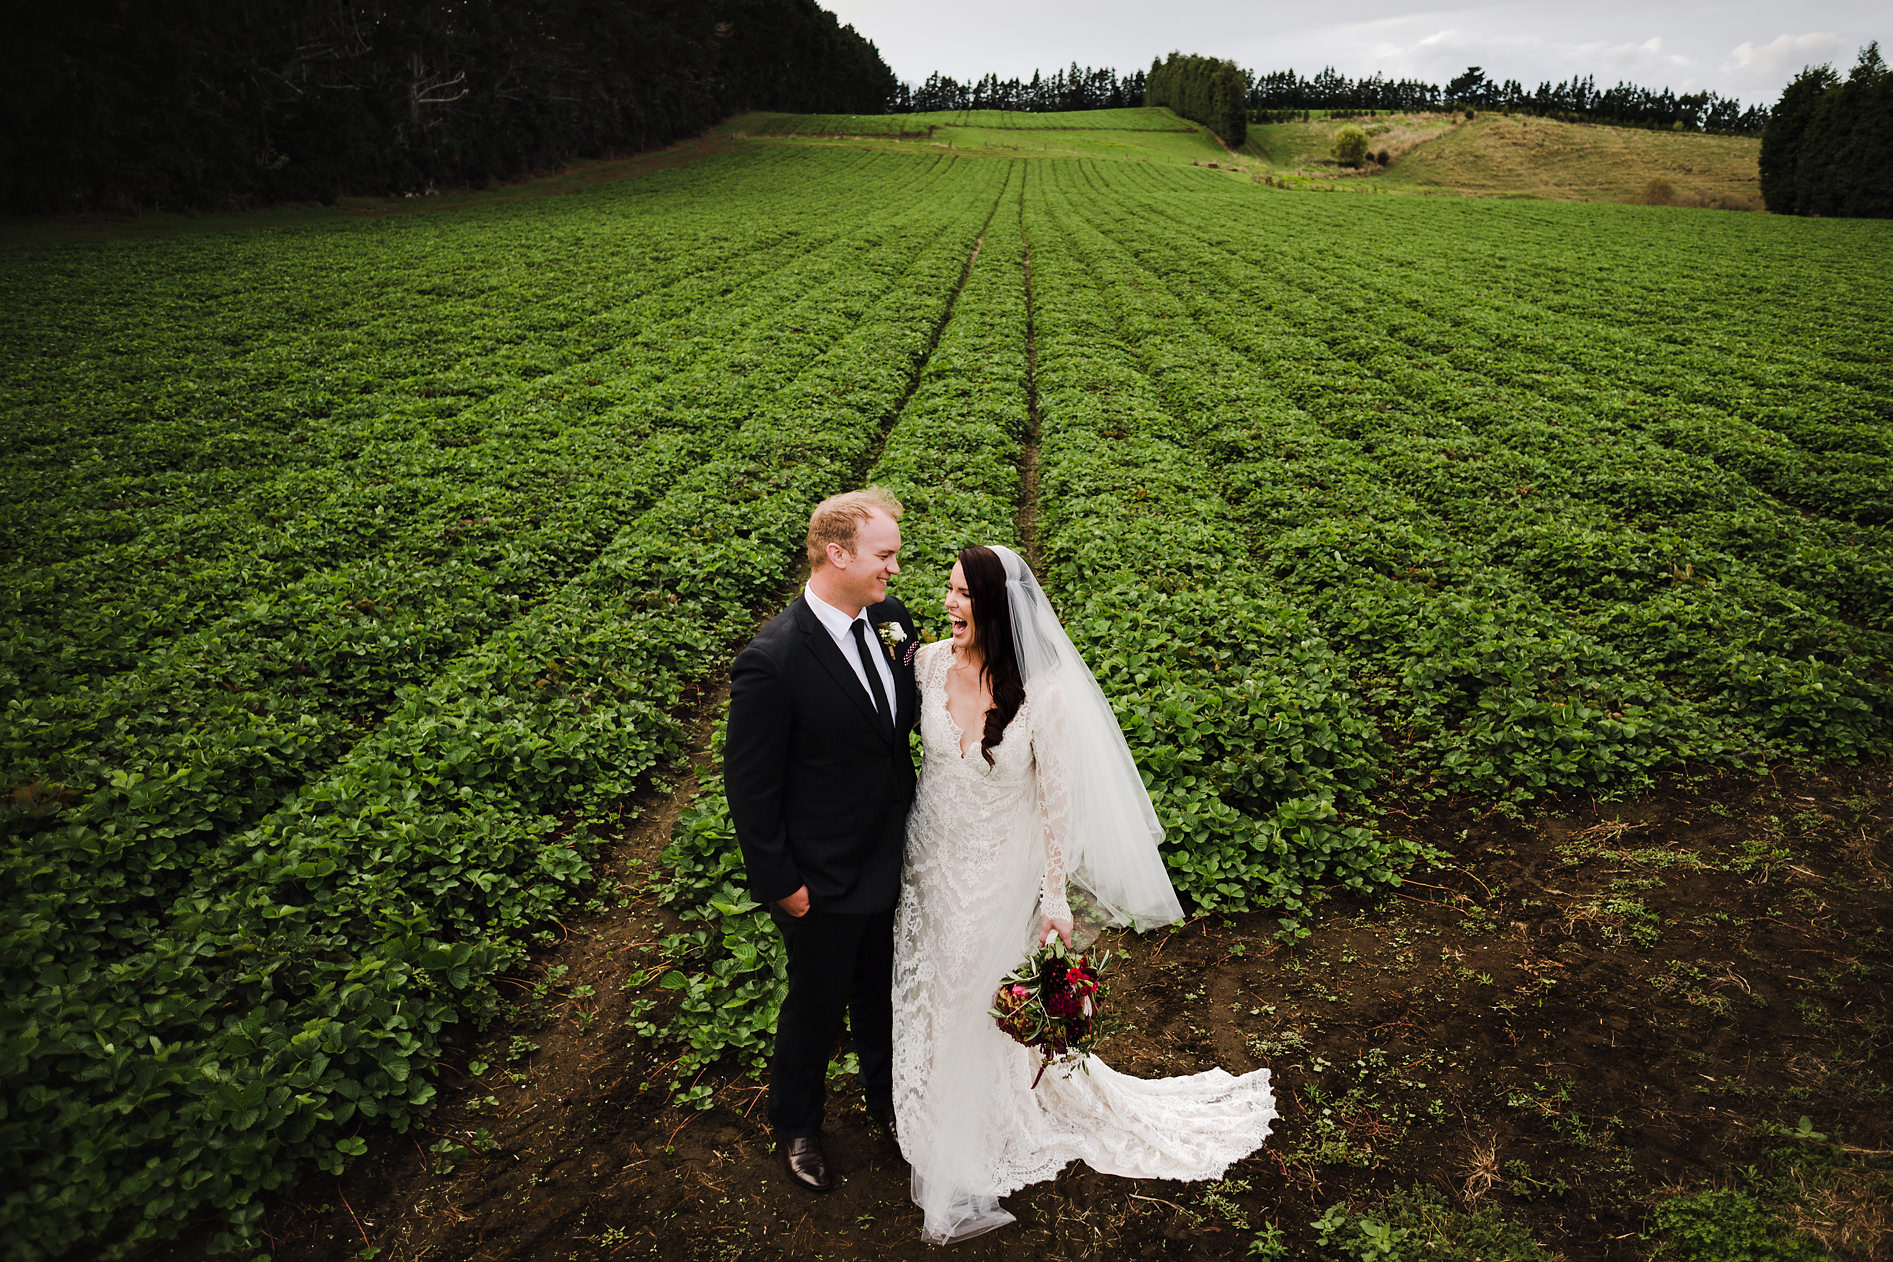 67 bride and groom in waihi field.JPG